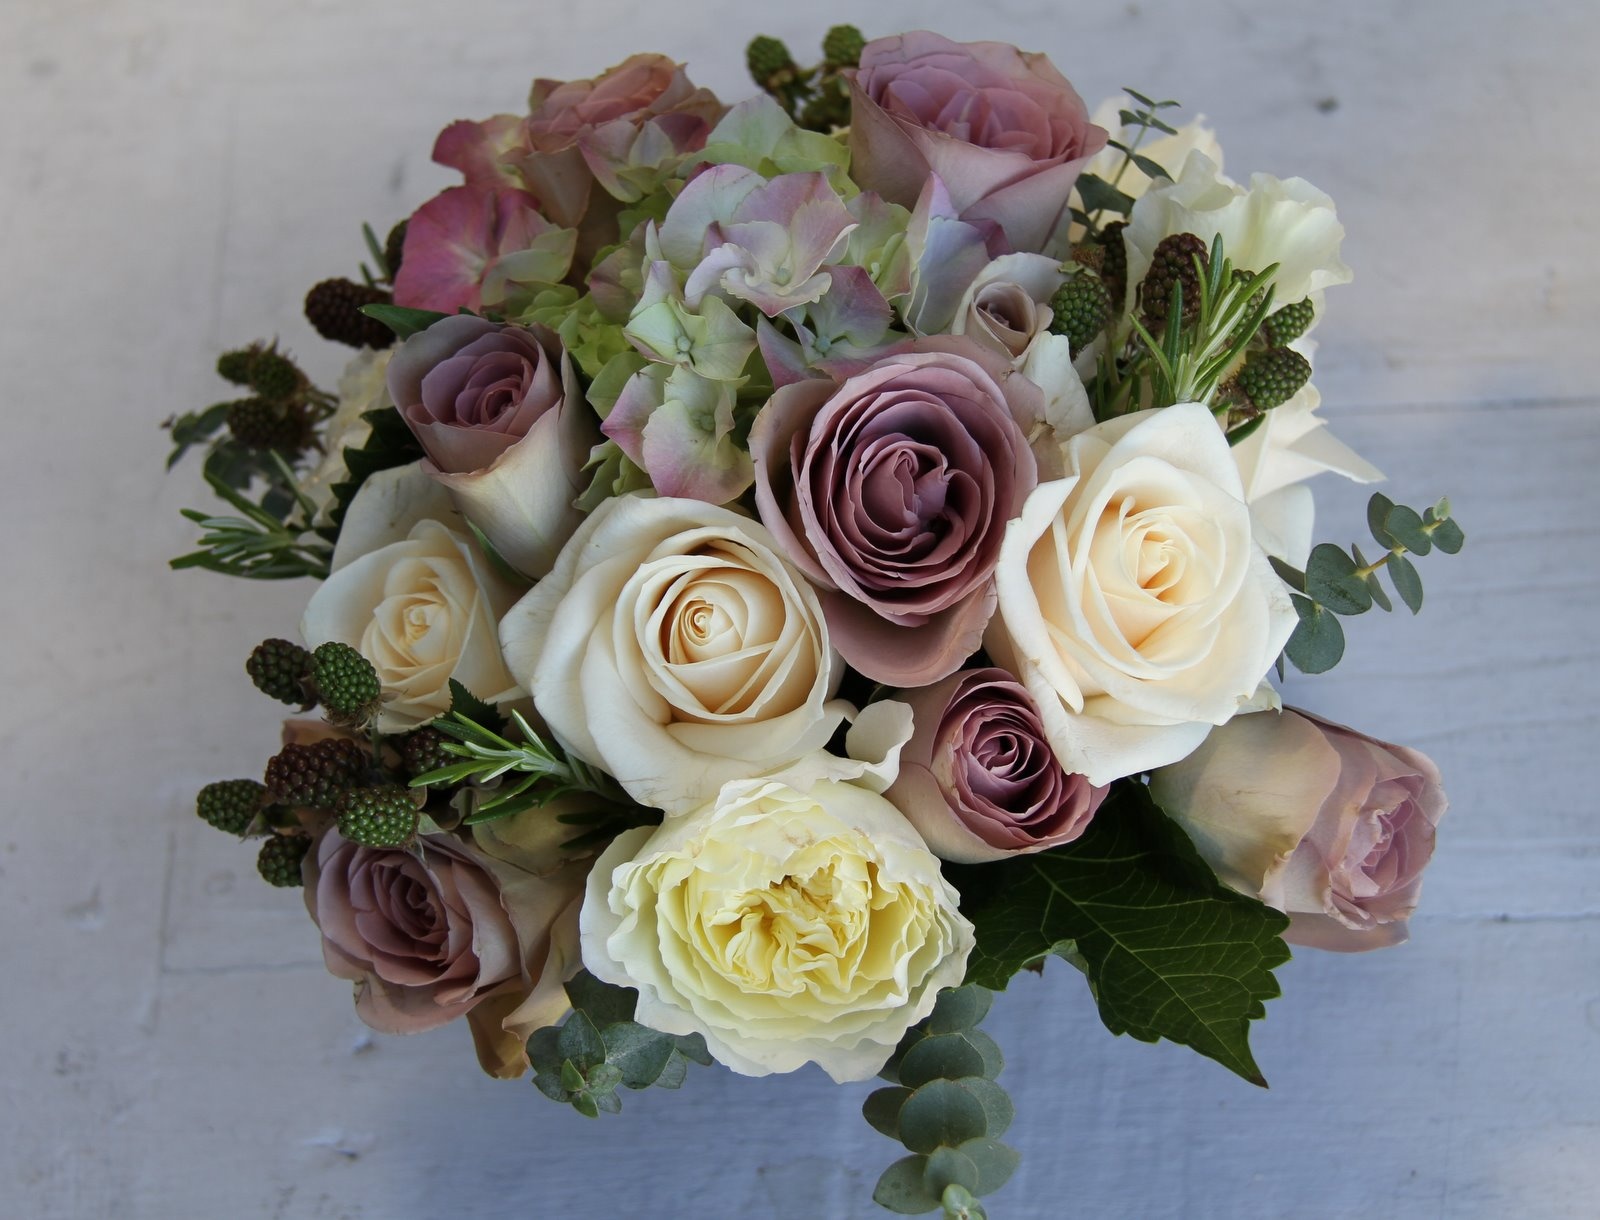 The Flower Magician Amnesia Amp Cream Wedding Bouquet With Blackberries Amp Rosemary